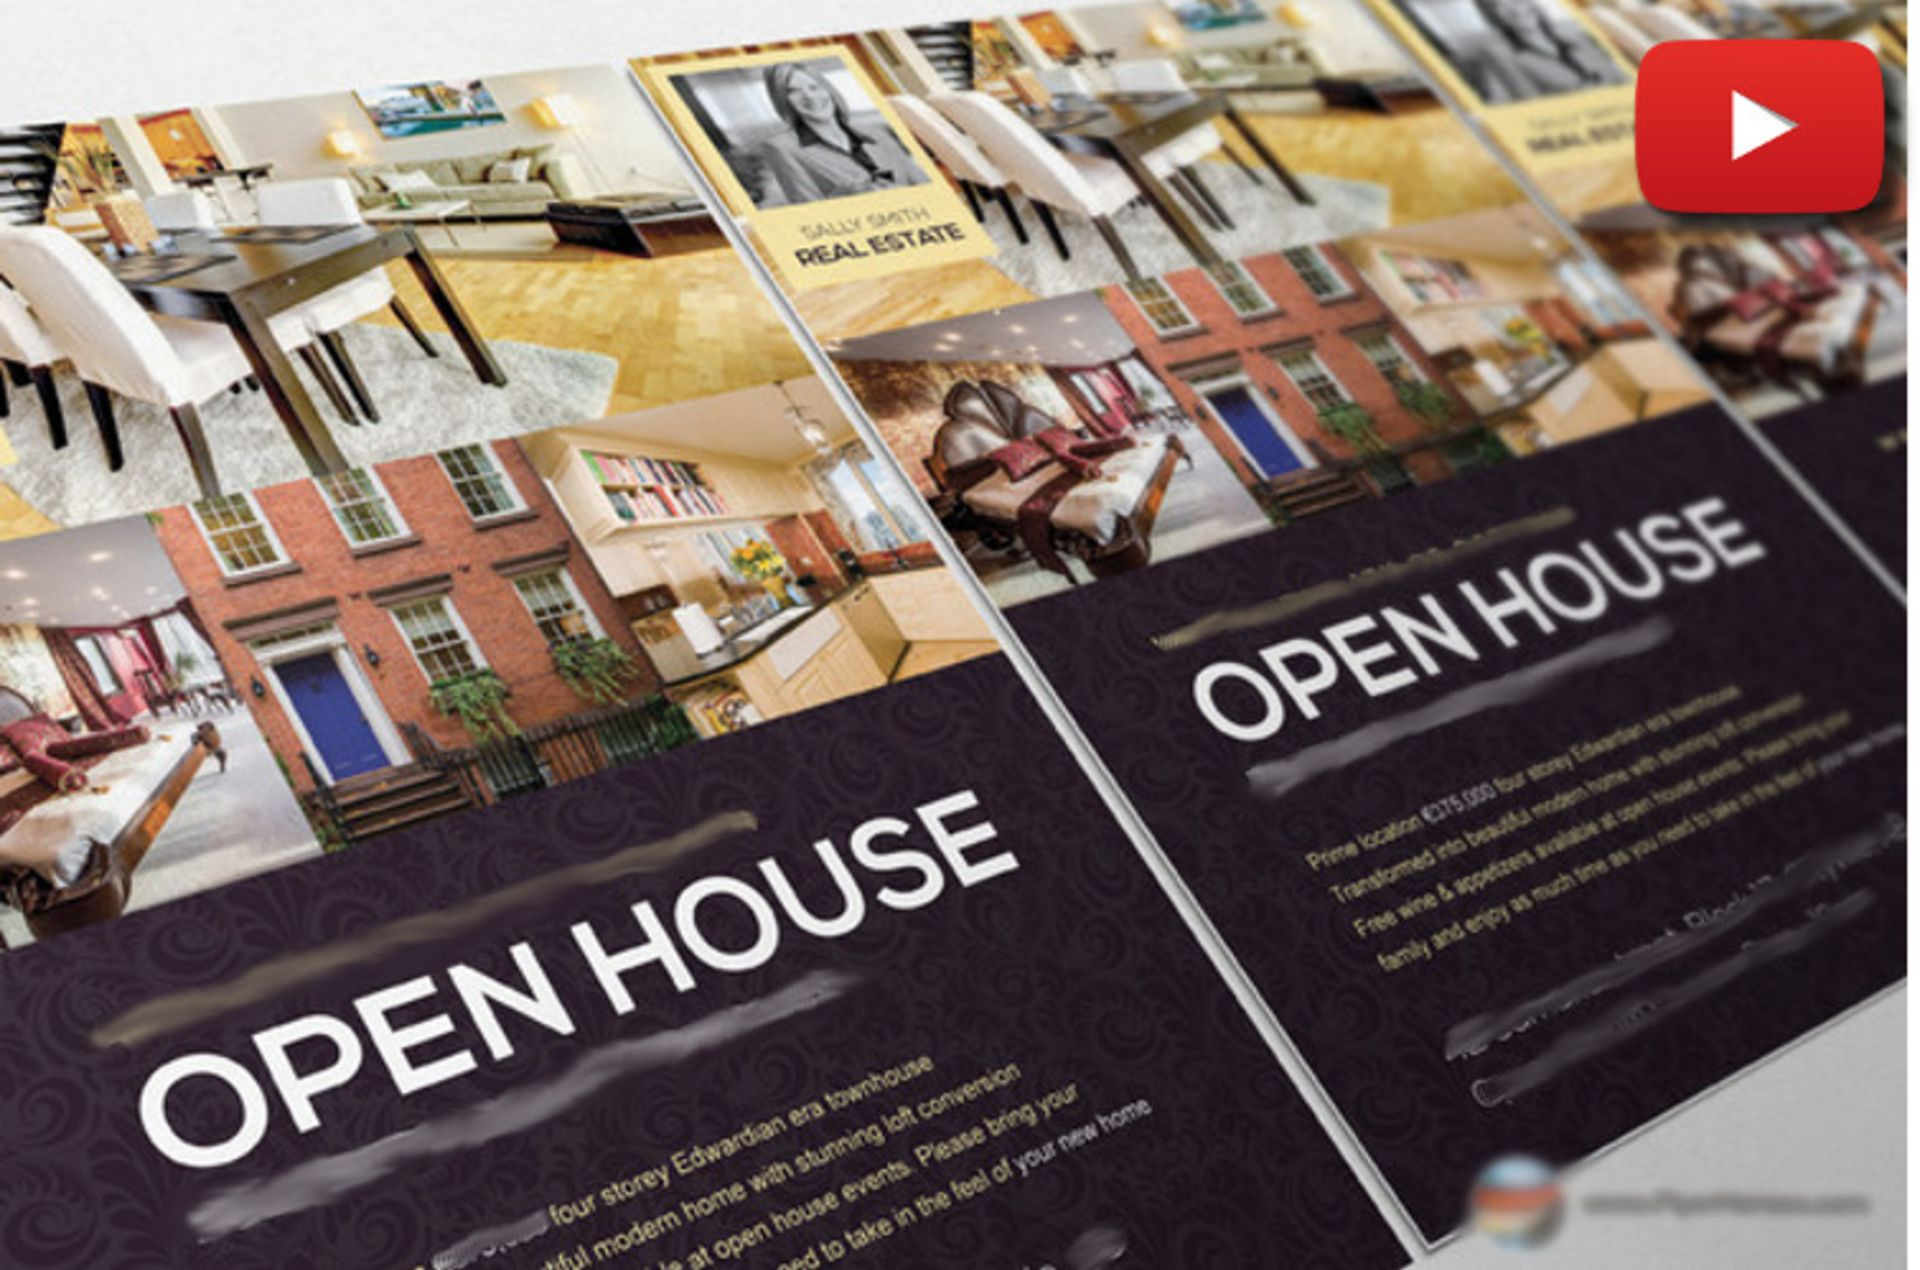 Don't Miss This Video Invite To Our Open House